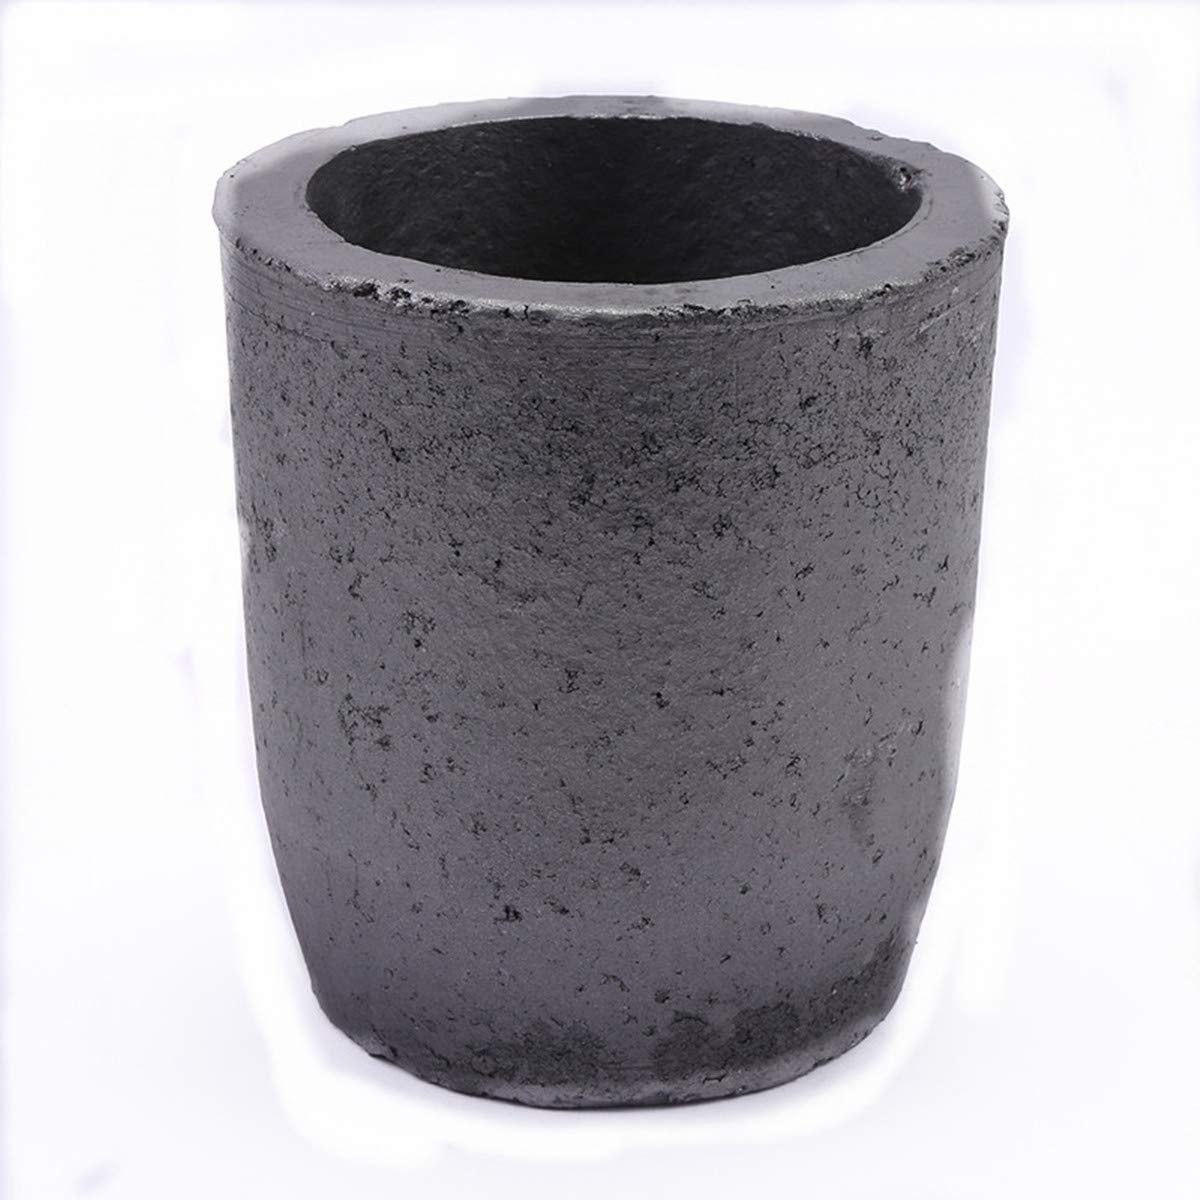 Durable Foundry Silicon Carbide 6KG Graphite Crucibles Cup Furnace Coke Oven Electric Torch Lab Supply Melting Casting Refining Gold Silver Copper Brass Aluminum (#12(1200ML))